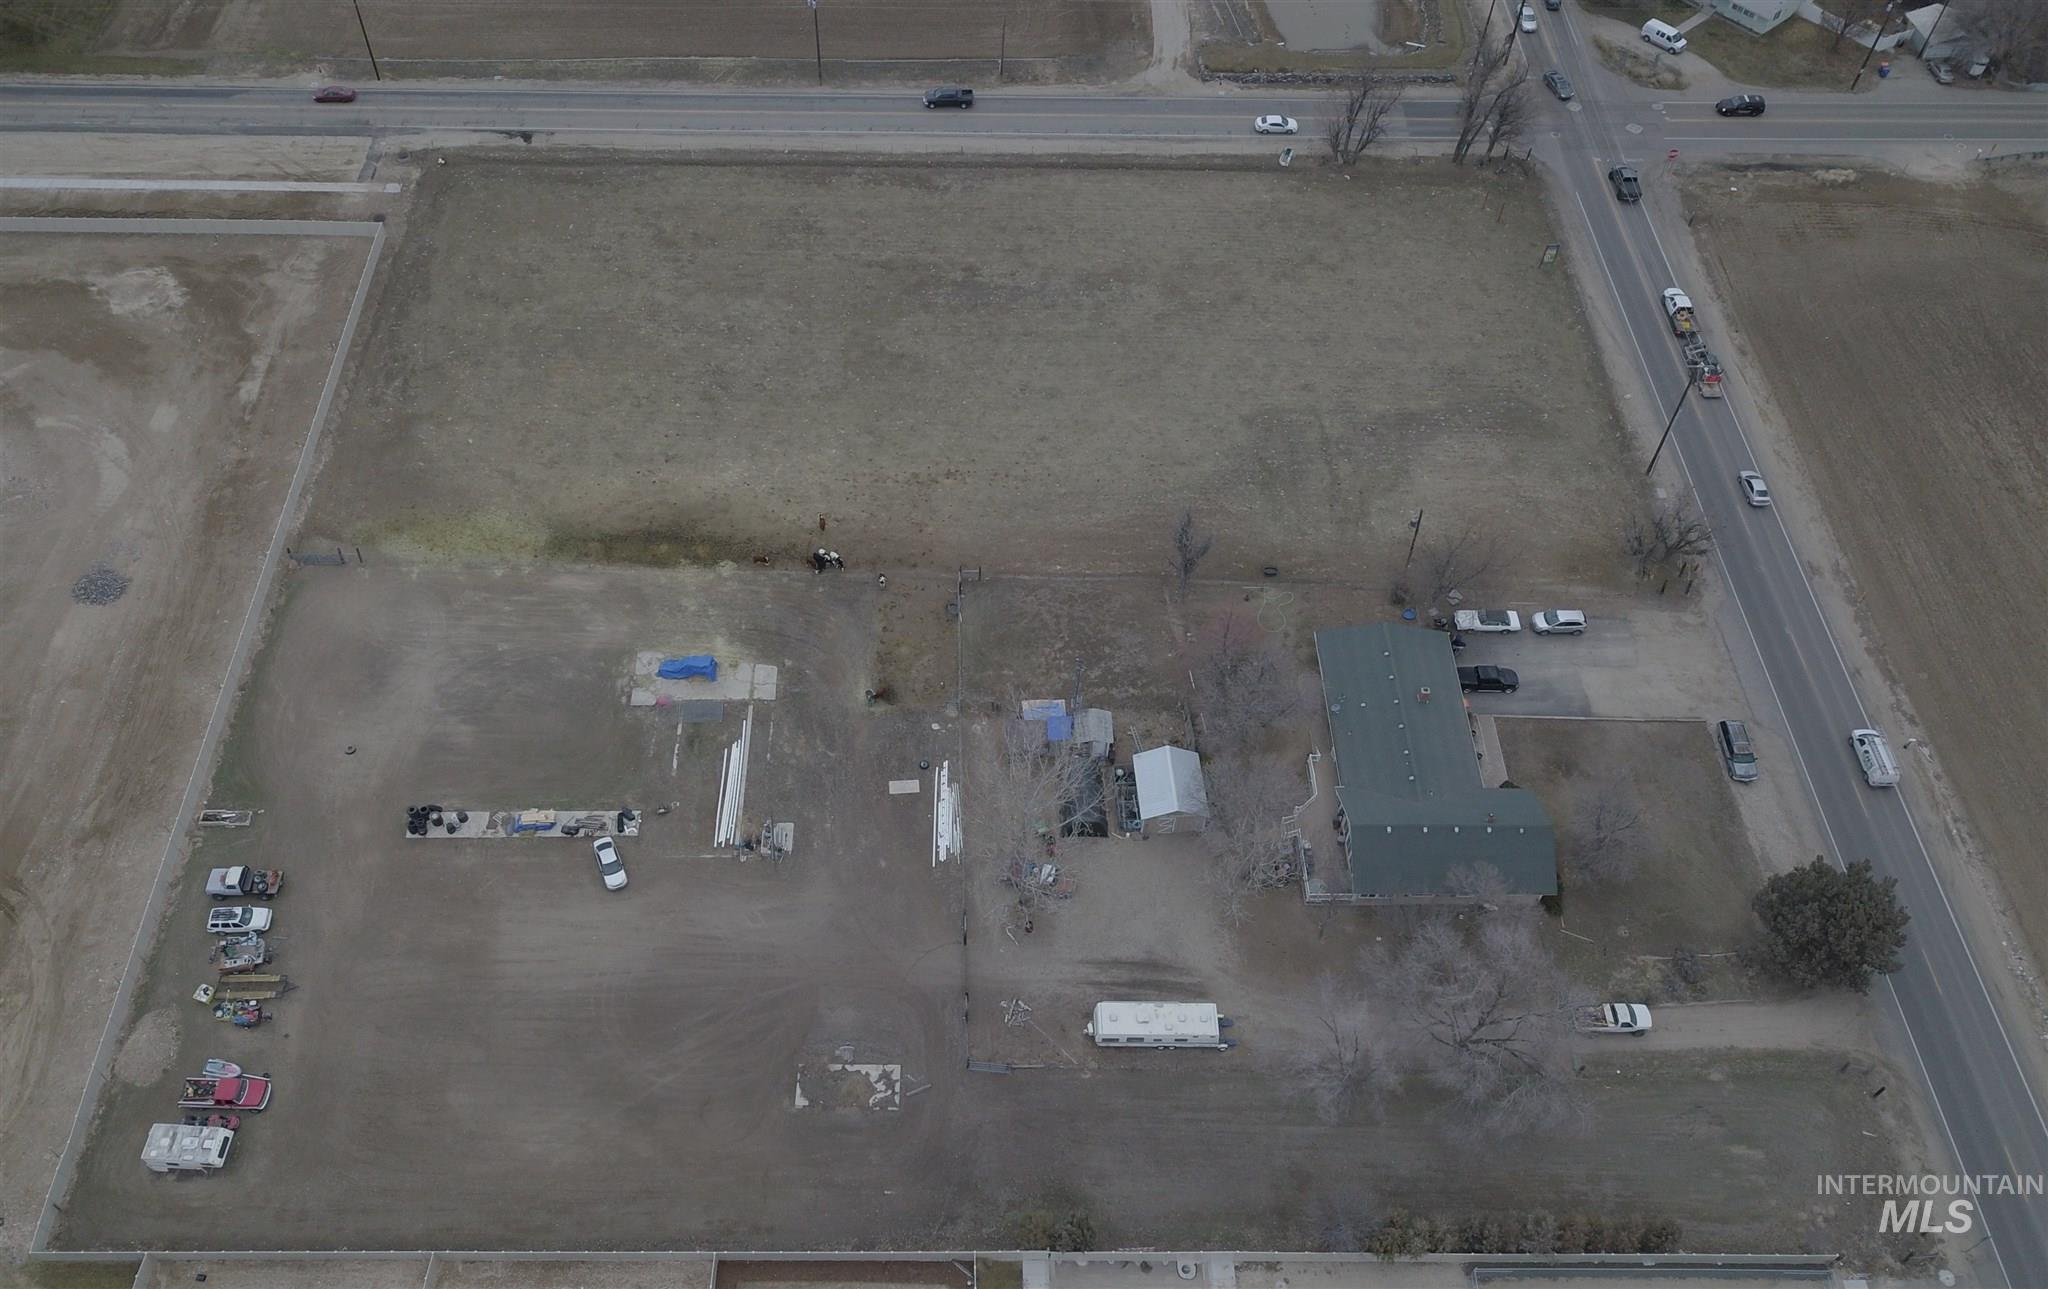 Prime development property at the southwest corner of Ten Mile and Lake Hazel. Value is in the land and potential re-zoning. Property includes a nice 3 bed 2 bath 2030 sq ft home that is currently on its own well & septic. All city services stubbed and ready for hookup. Very busy SW corner lot intersection with easy access to Meridian, Nampa and I-84 Ten Mile Interchange. - Brett Kent, Main: 208-350-1308, 1st Place Realty, LLC, Main: 208-376-2122,